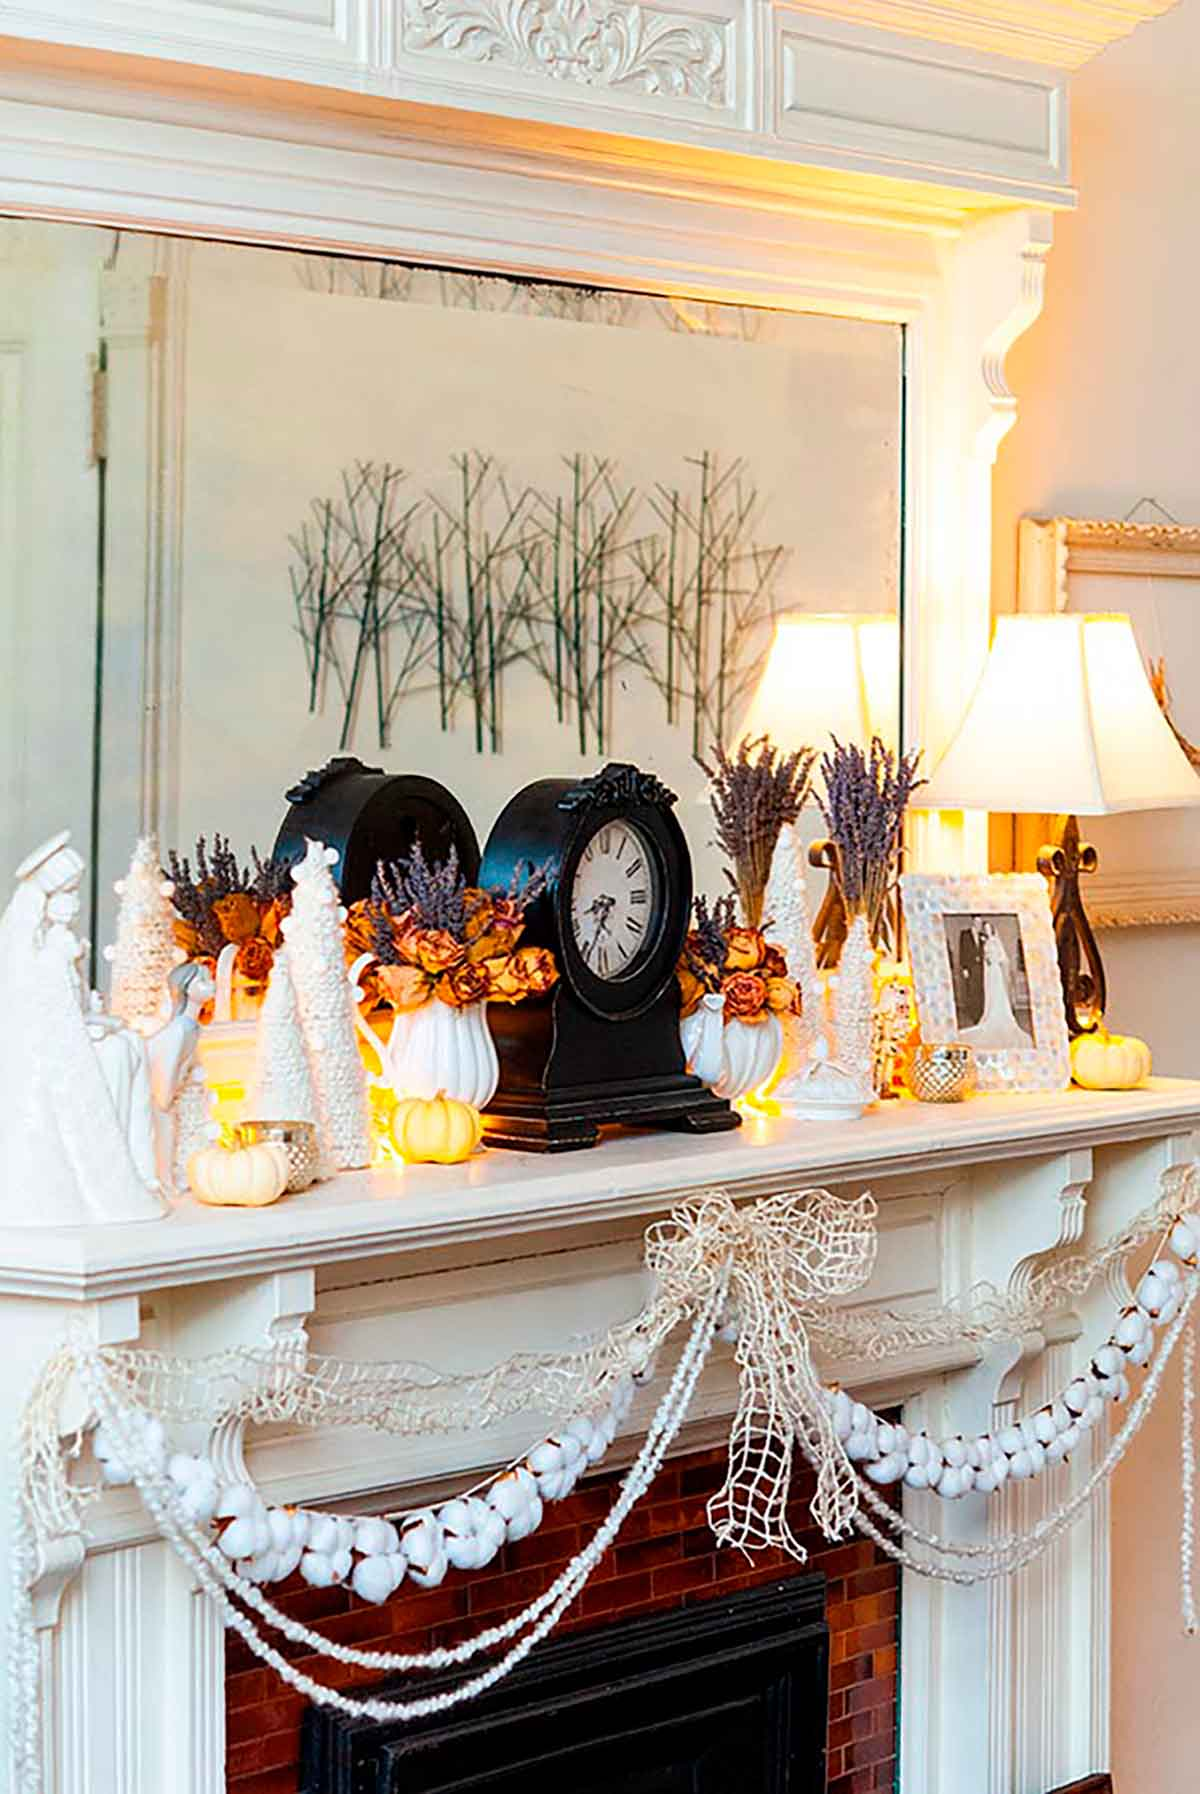 A mantle decorated with a clock, various Christmas decorations and cotton garland.